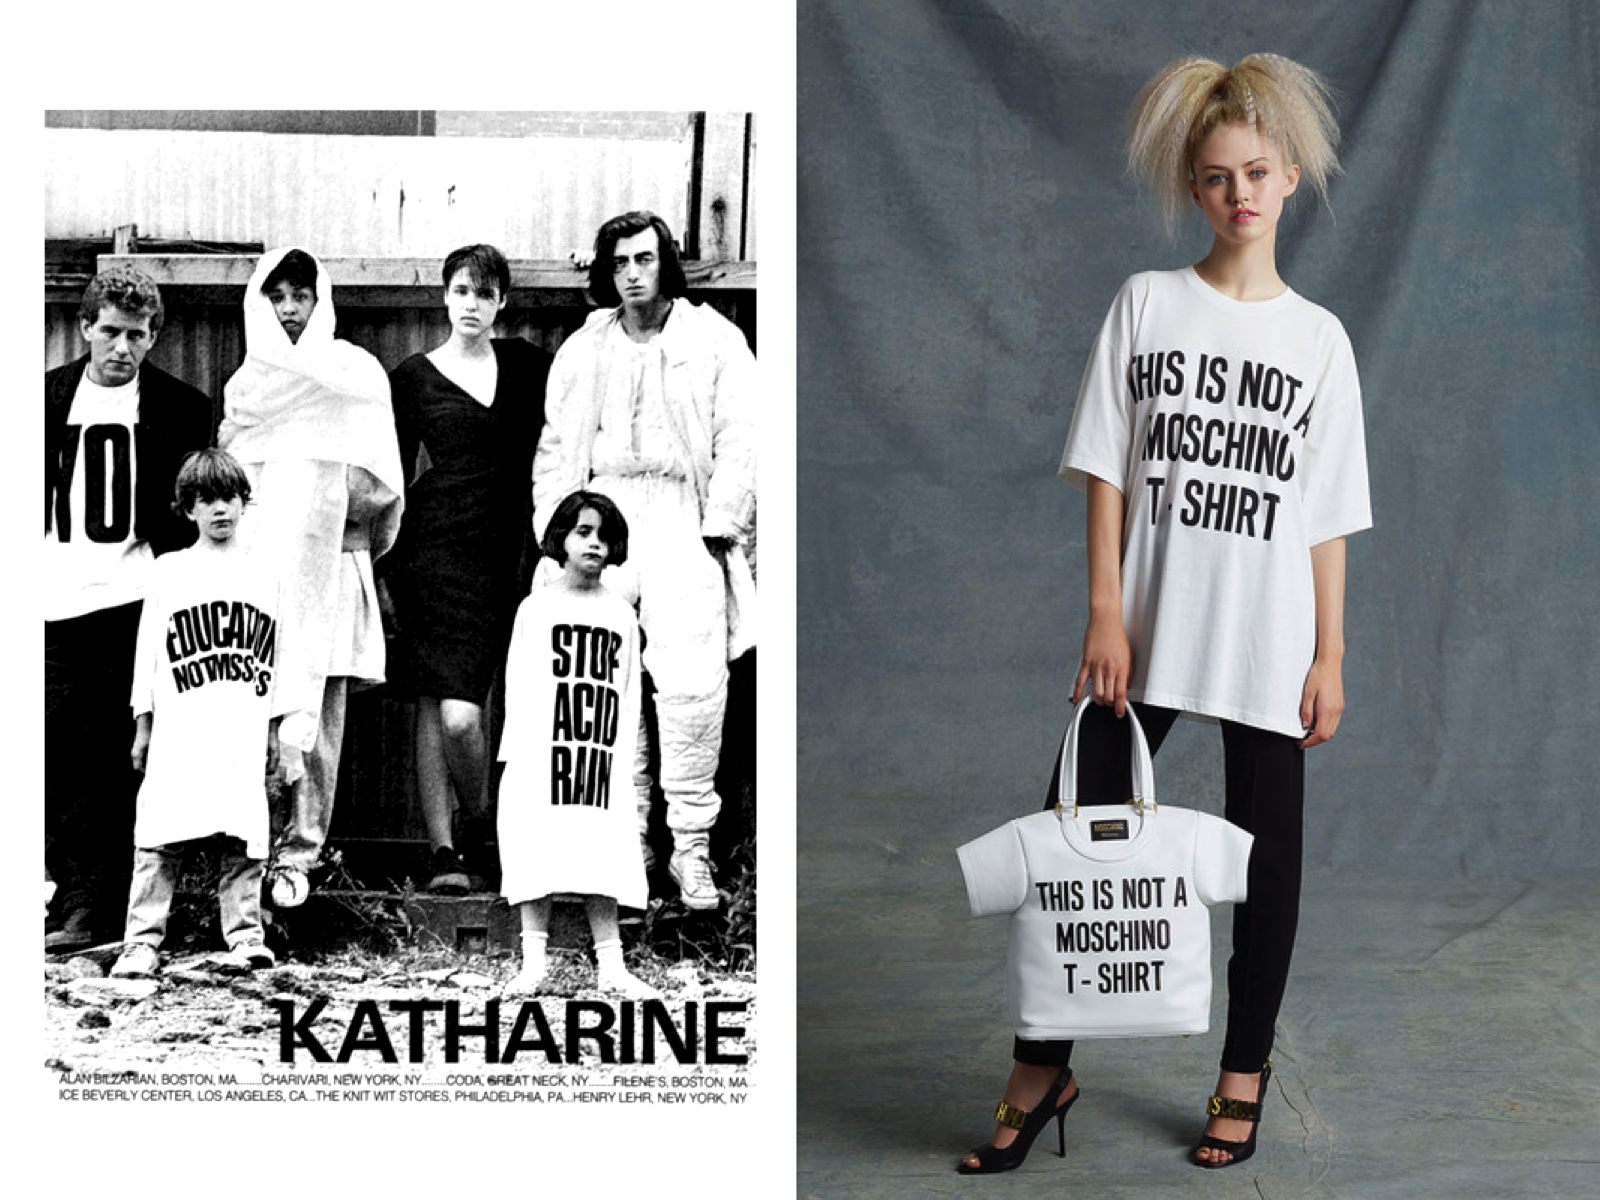 Into The Fashion Inspiration Katharine Hamnett Statement T Shirts Jeremy Scott For Moschino